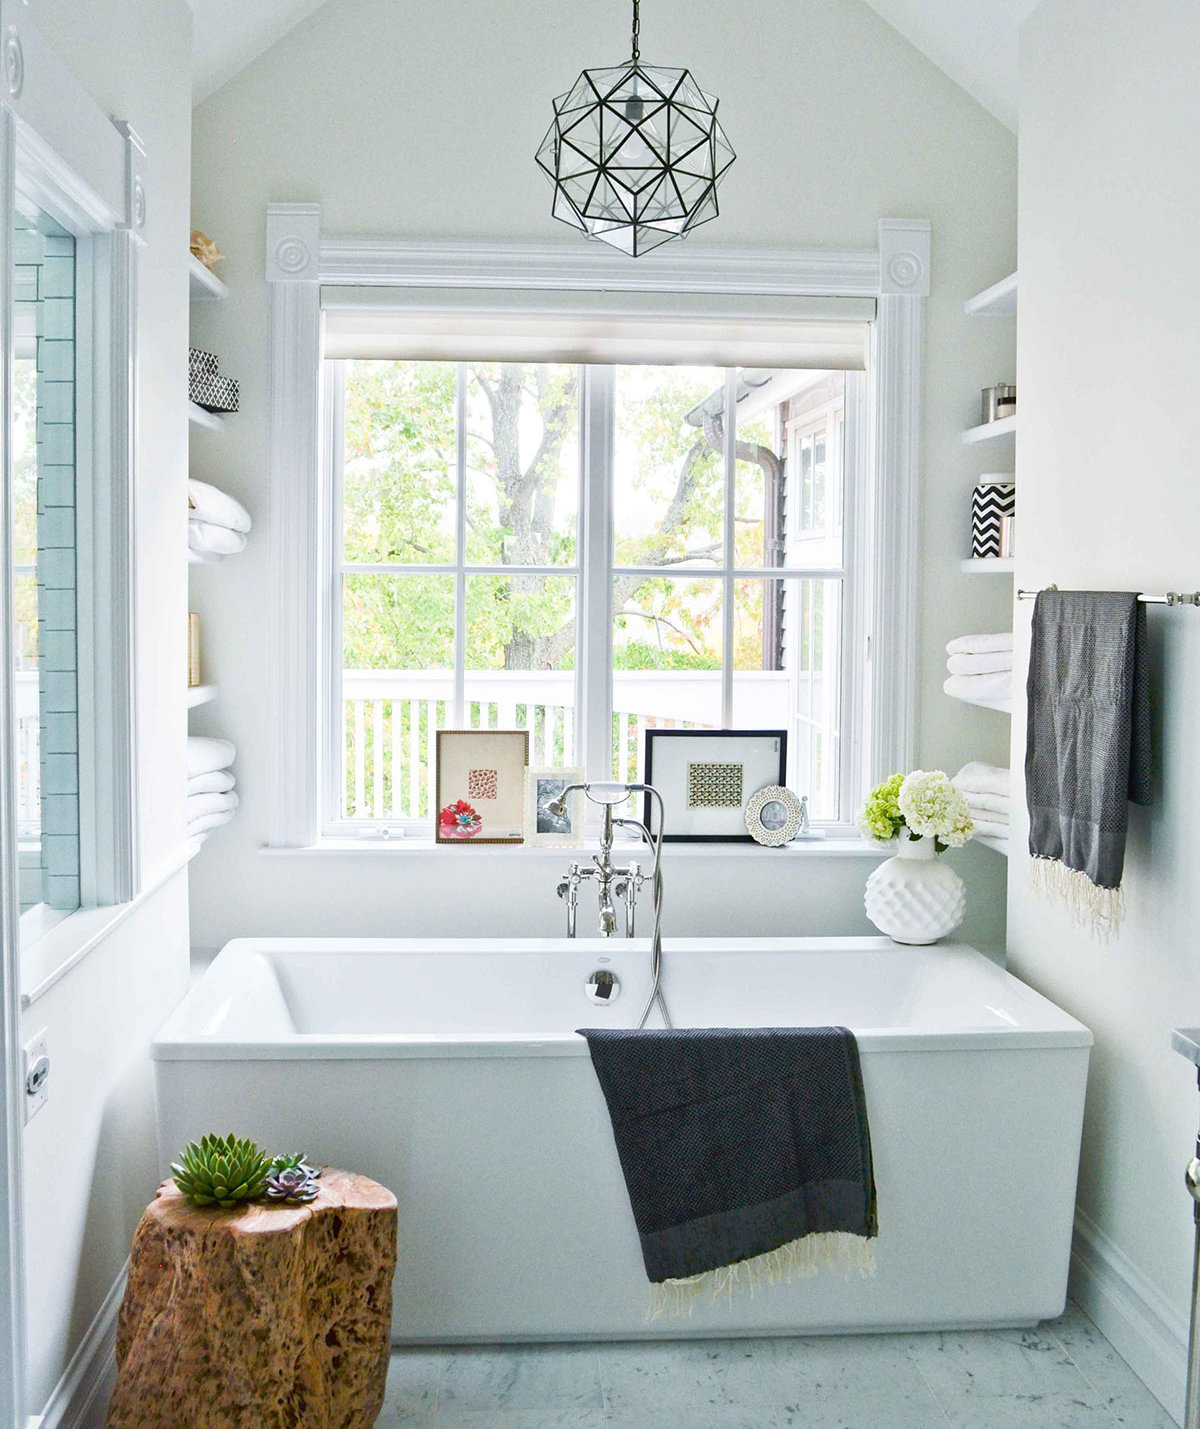 Design Ideas For Kitchen Bathroom Living Room: 12 Things Only Professional Cleaners Know